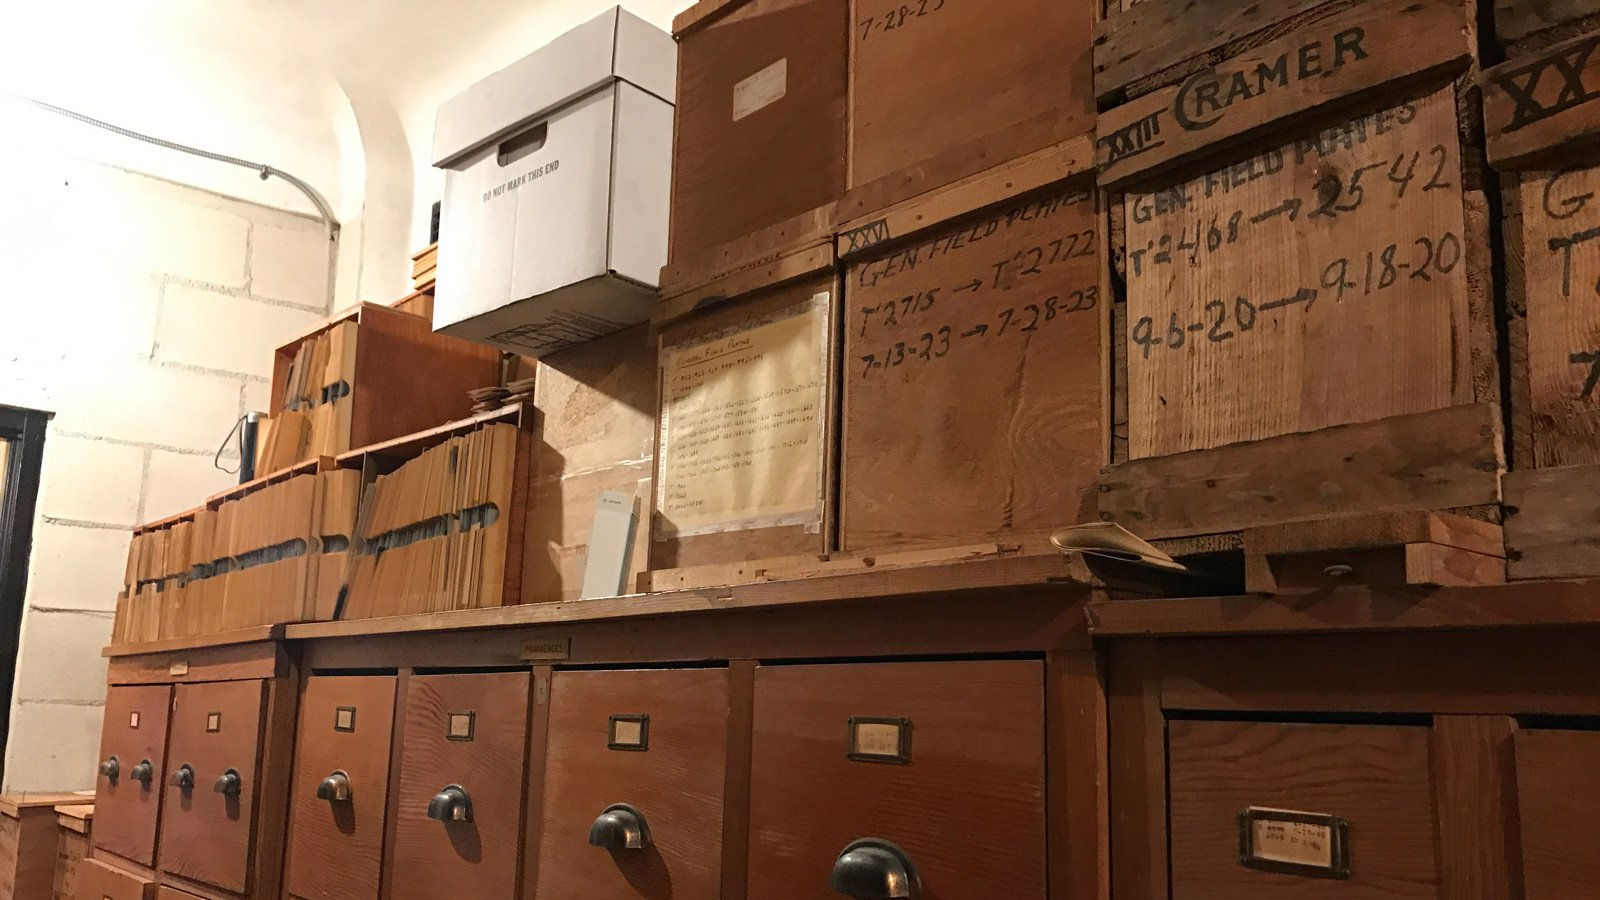 A storeroom at Carnegie Observatories in Pasadena, California, holding archives from the Mount Wilson telescopes and other astronomical records.